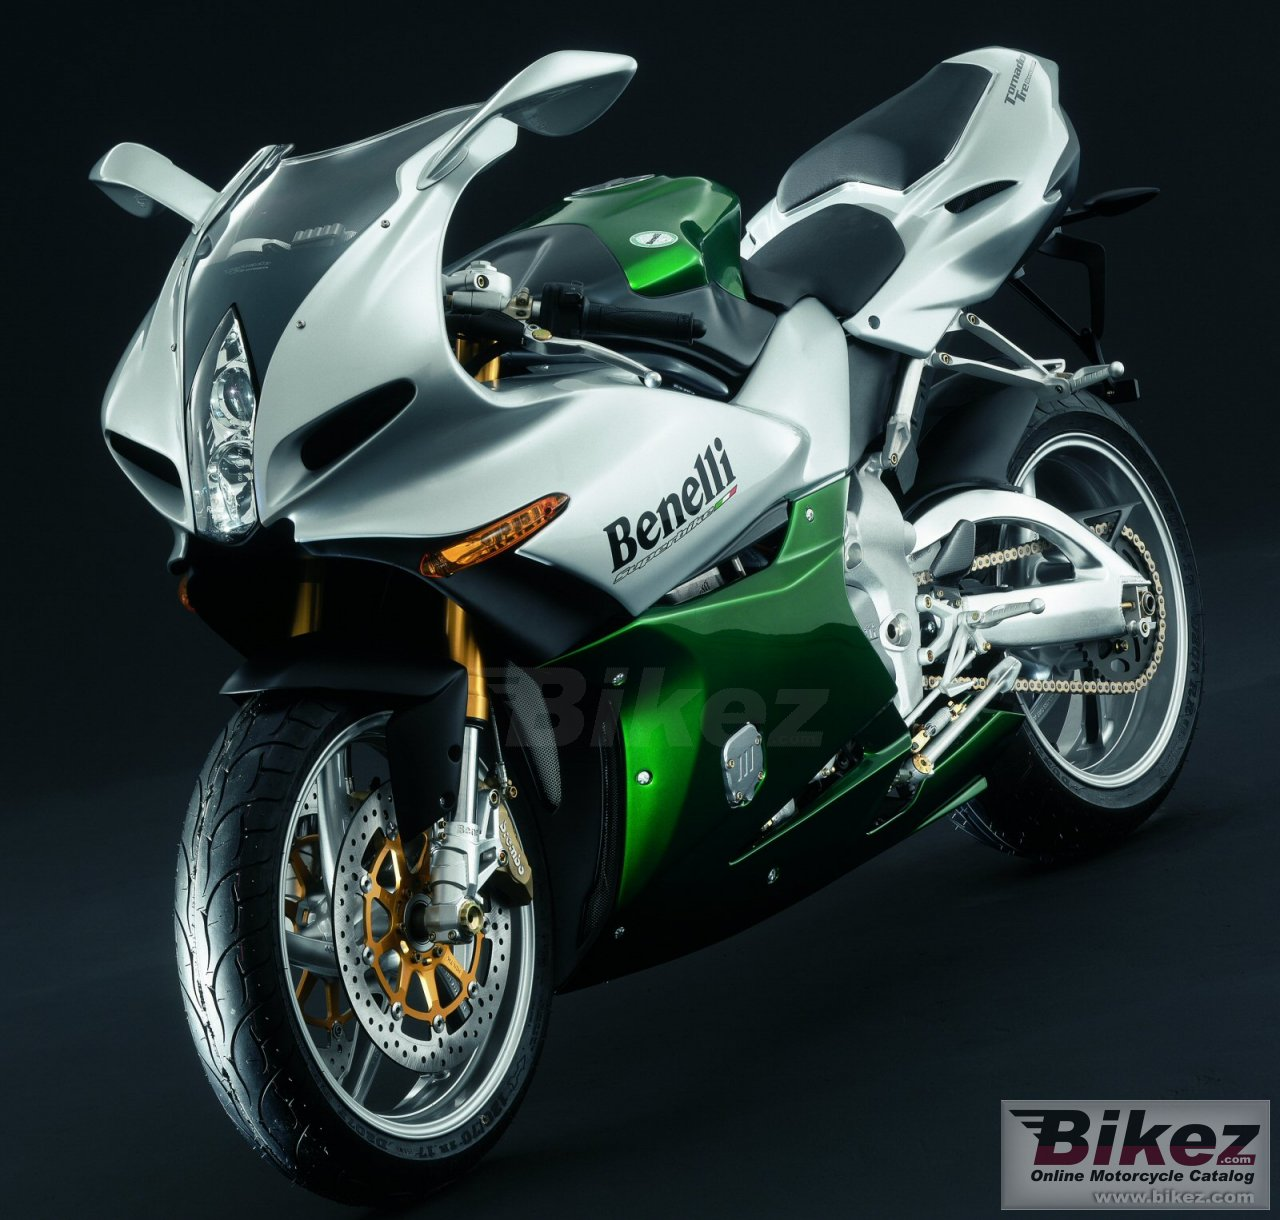 Big Benelli tornado tre 900 picture and wallpaper from Bikez.com